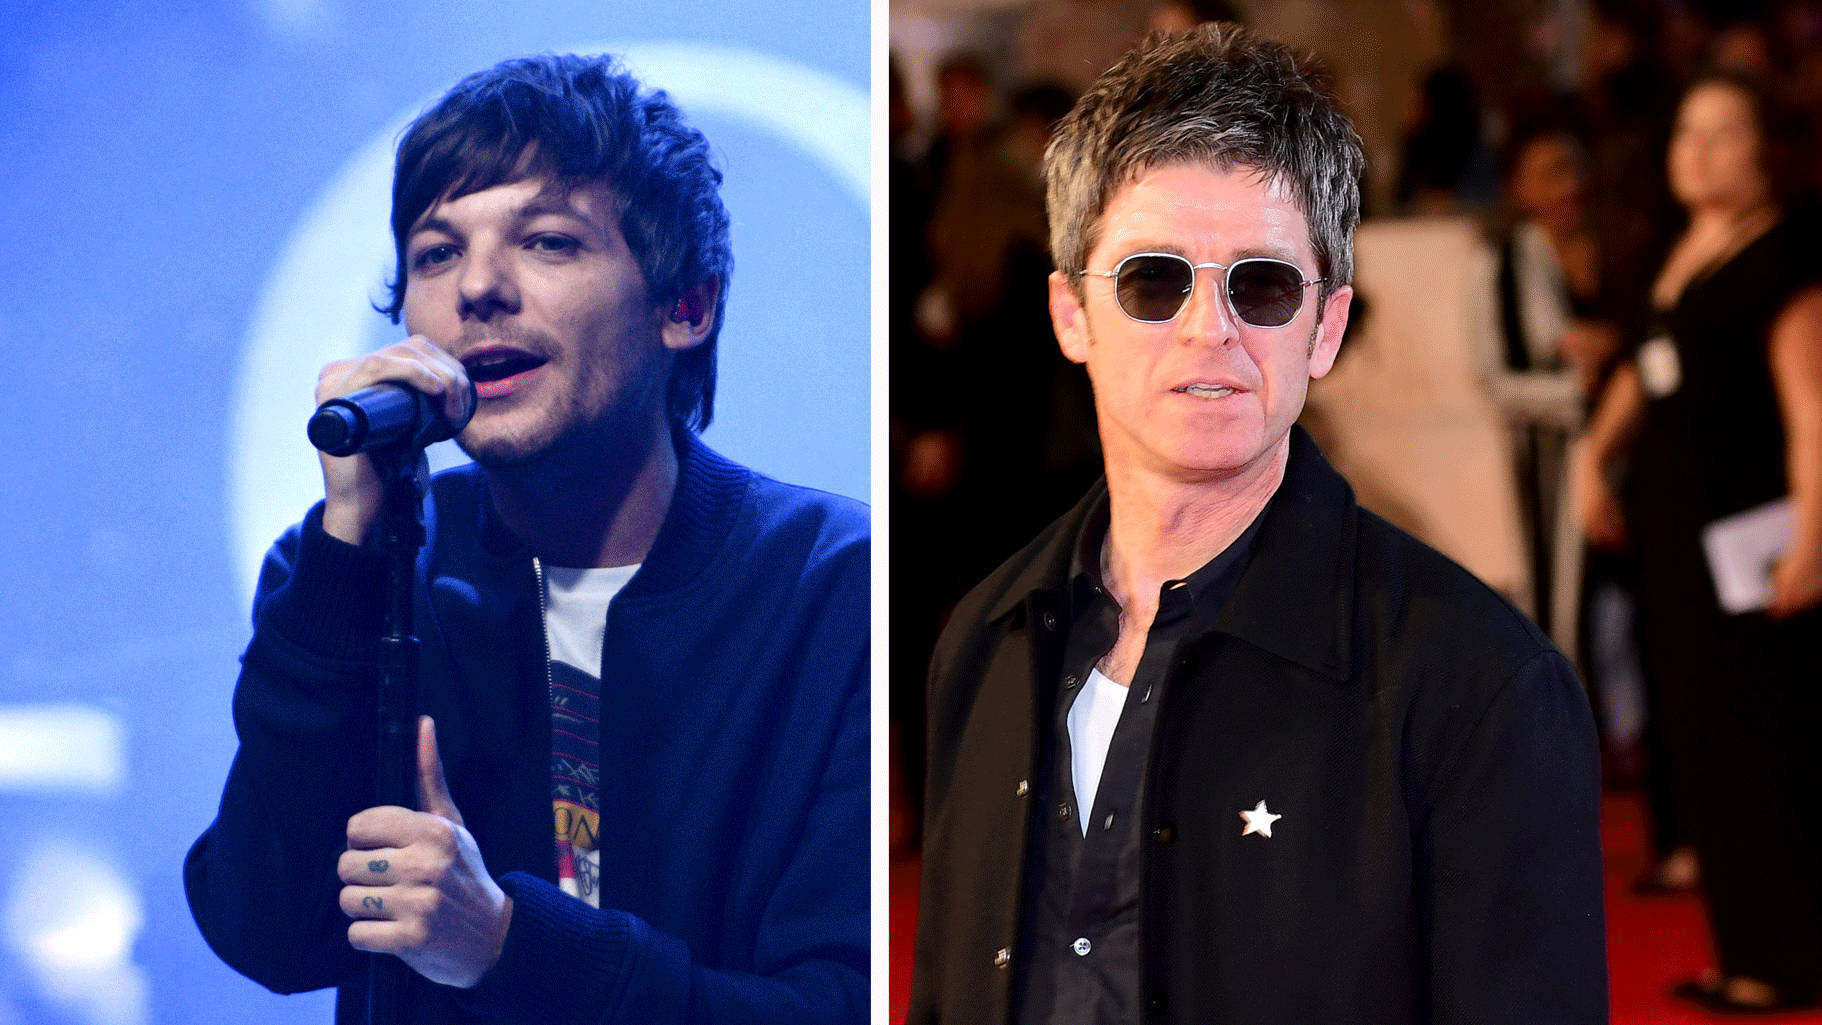 Louis Tomlinson adds Noel Gallagher credit to Walls single